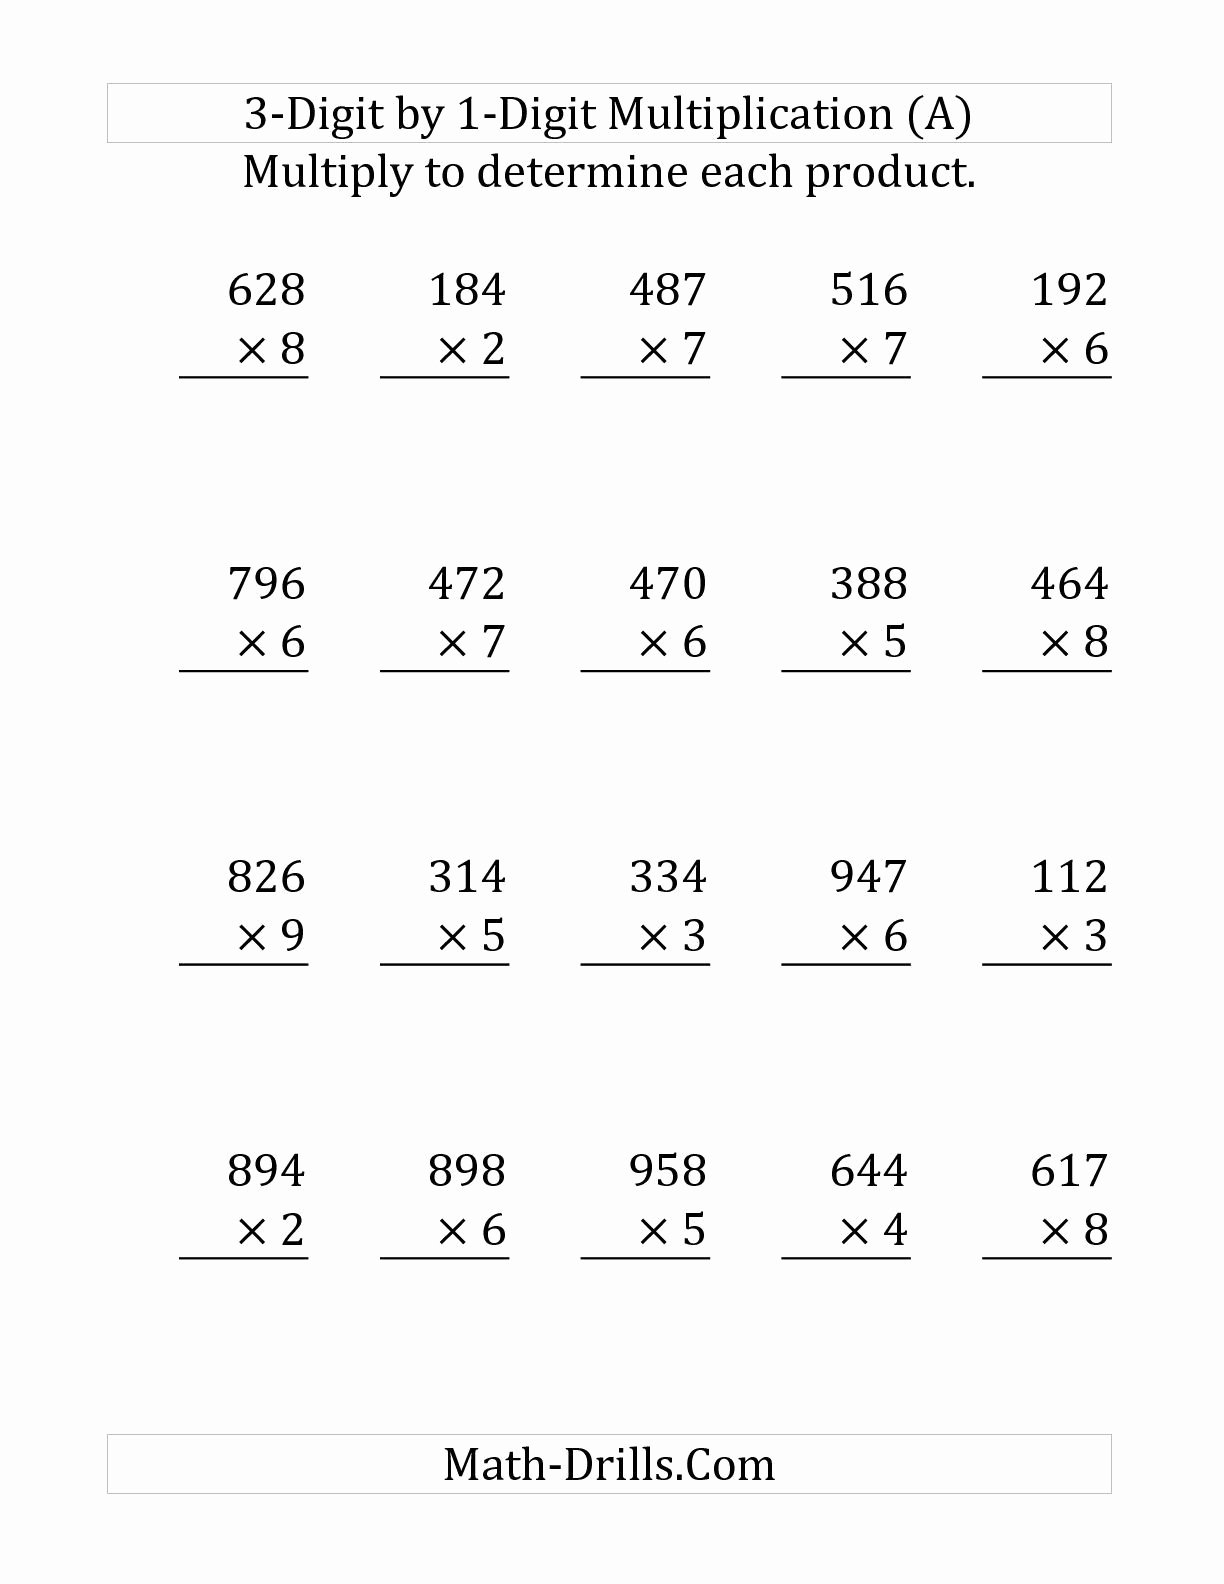 Multiplication Worksheets 2 Digit by 1 Fresh the Multiplying A 3 Digit Number by A 1 Digit Number